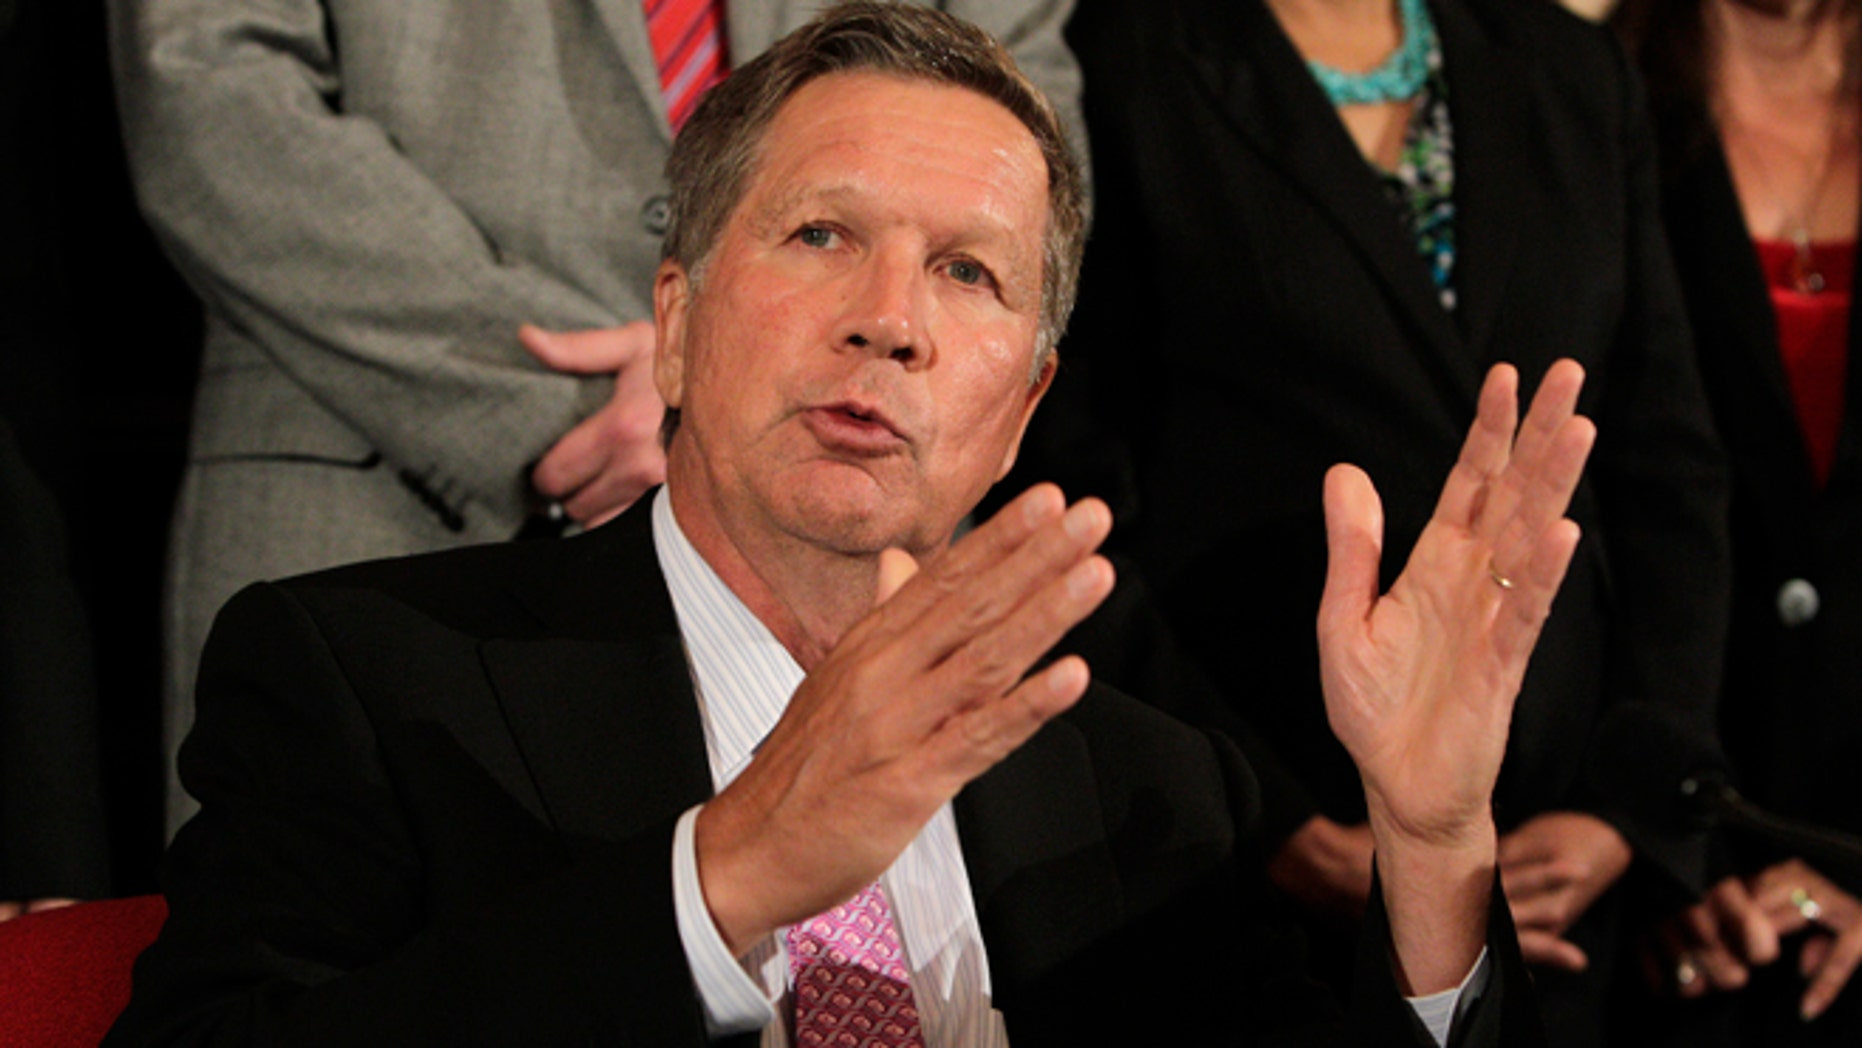 Gov. John Kasich has signed a Ohio bill into law that would ban doctors from performing abortions after a fetal diagnosis of Down syndrome.